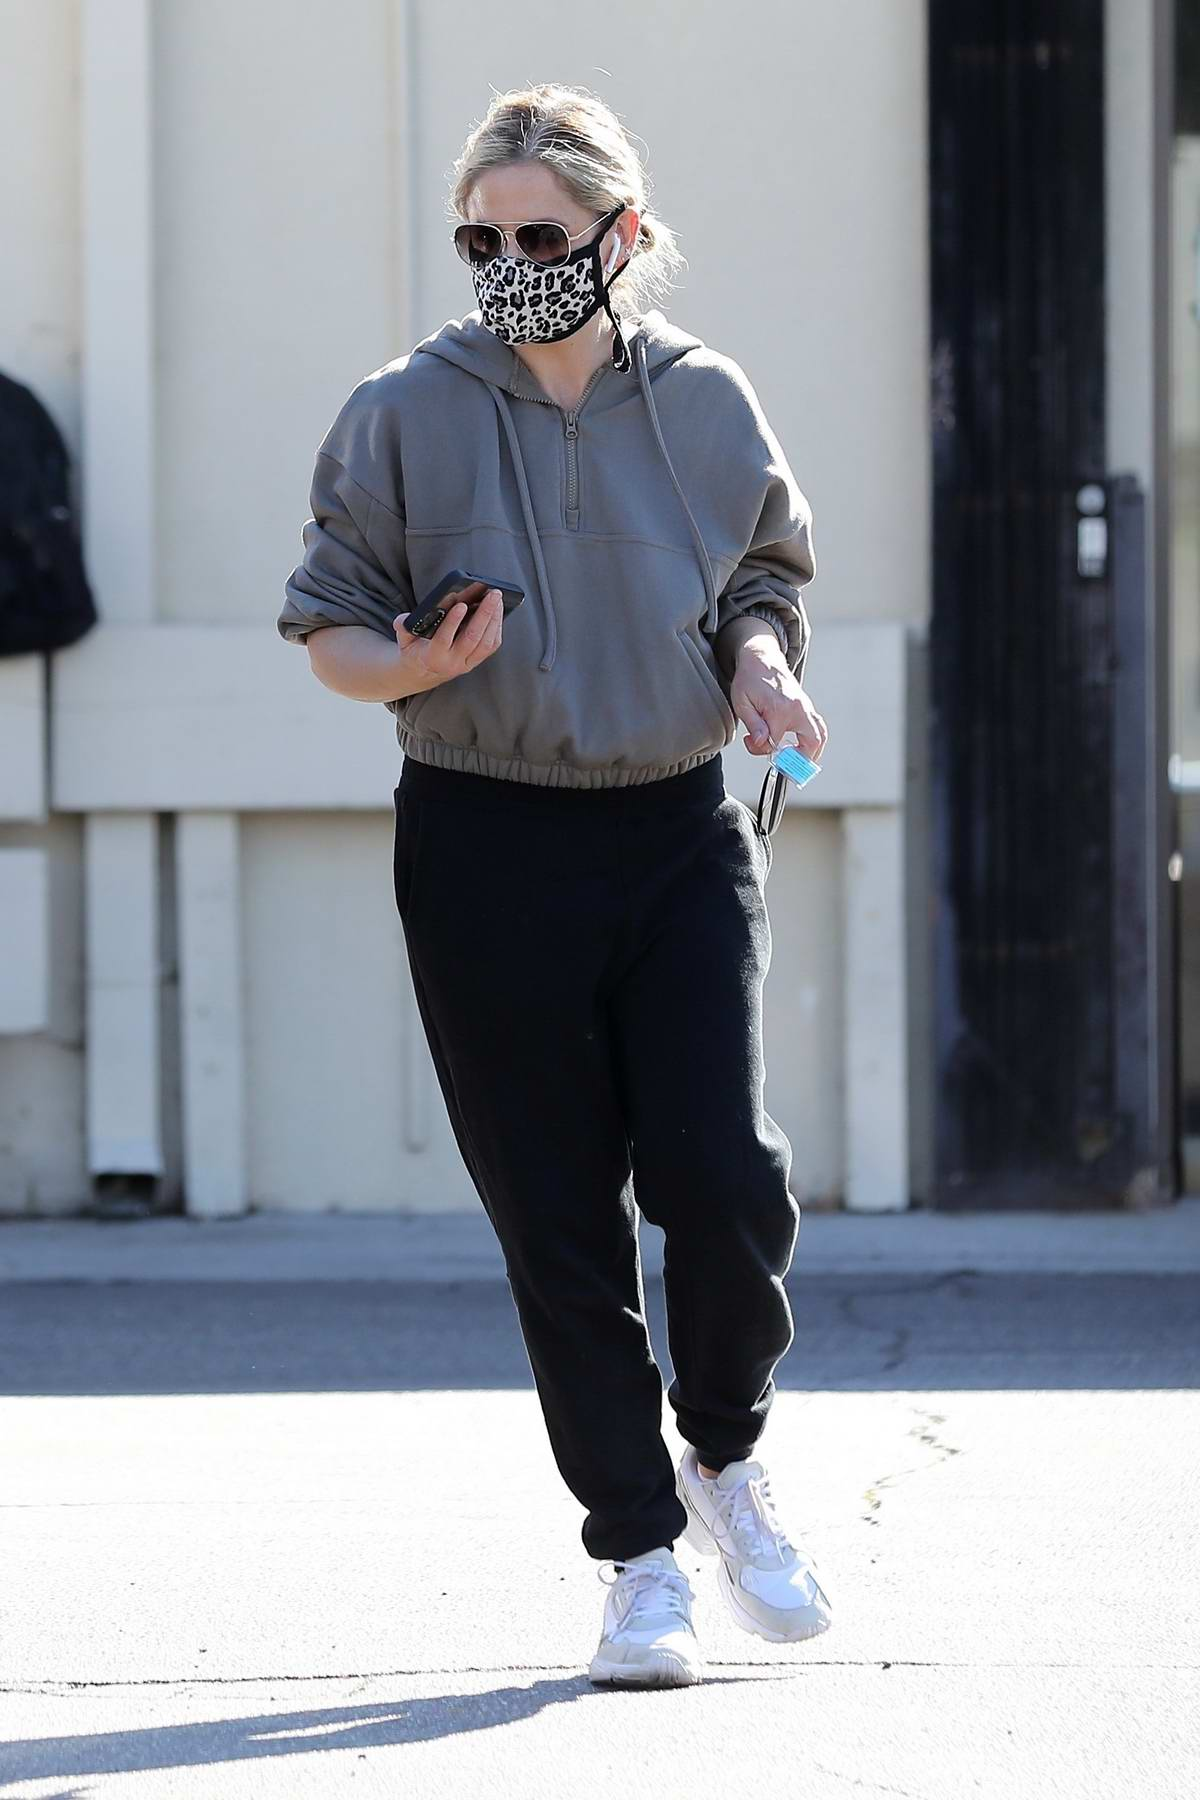 Sarah Michelle Gellar stays cozy in sweats as she visits her PO Box to pick up mail and packages in Brentwood, California